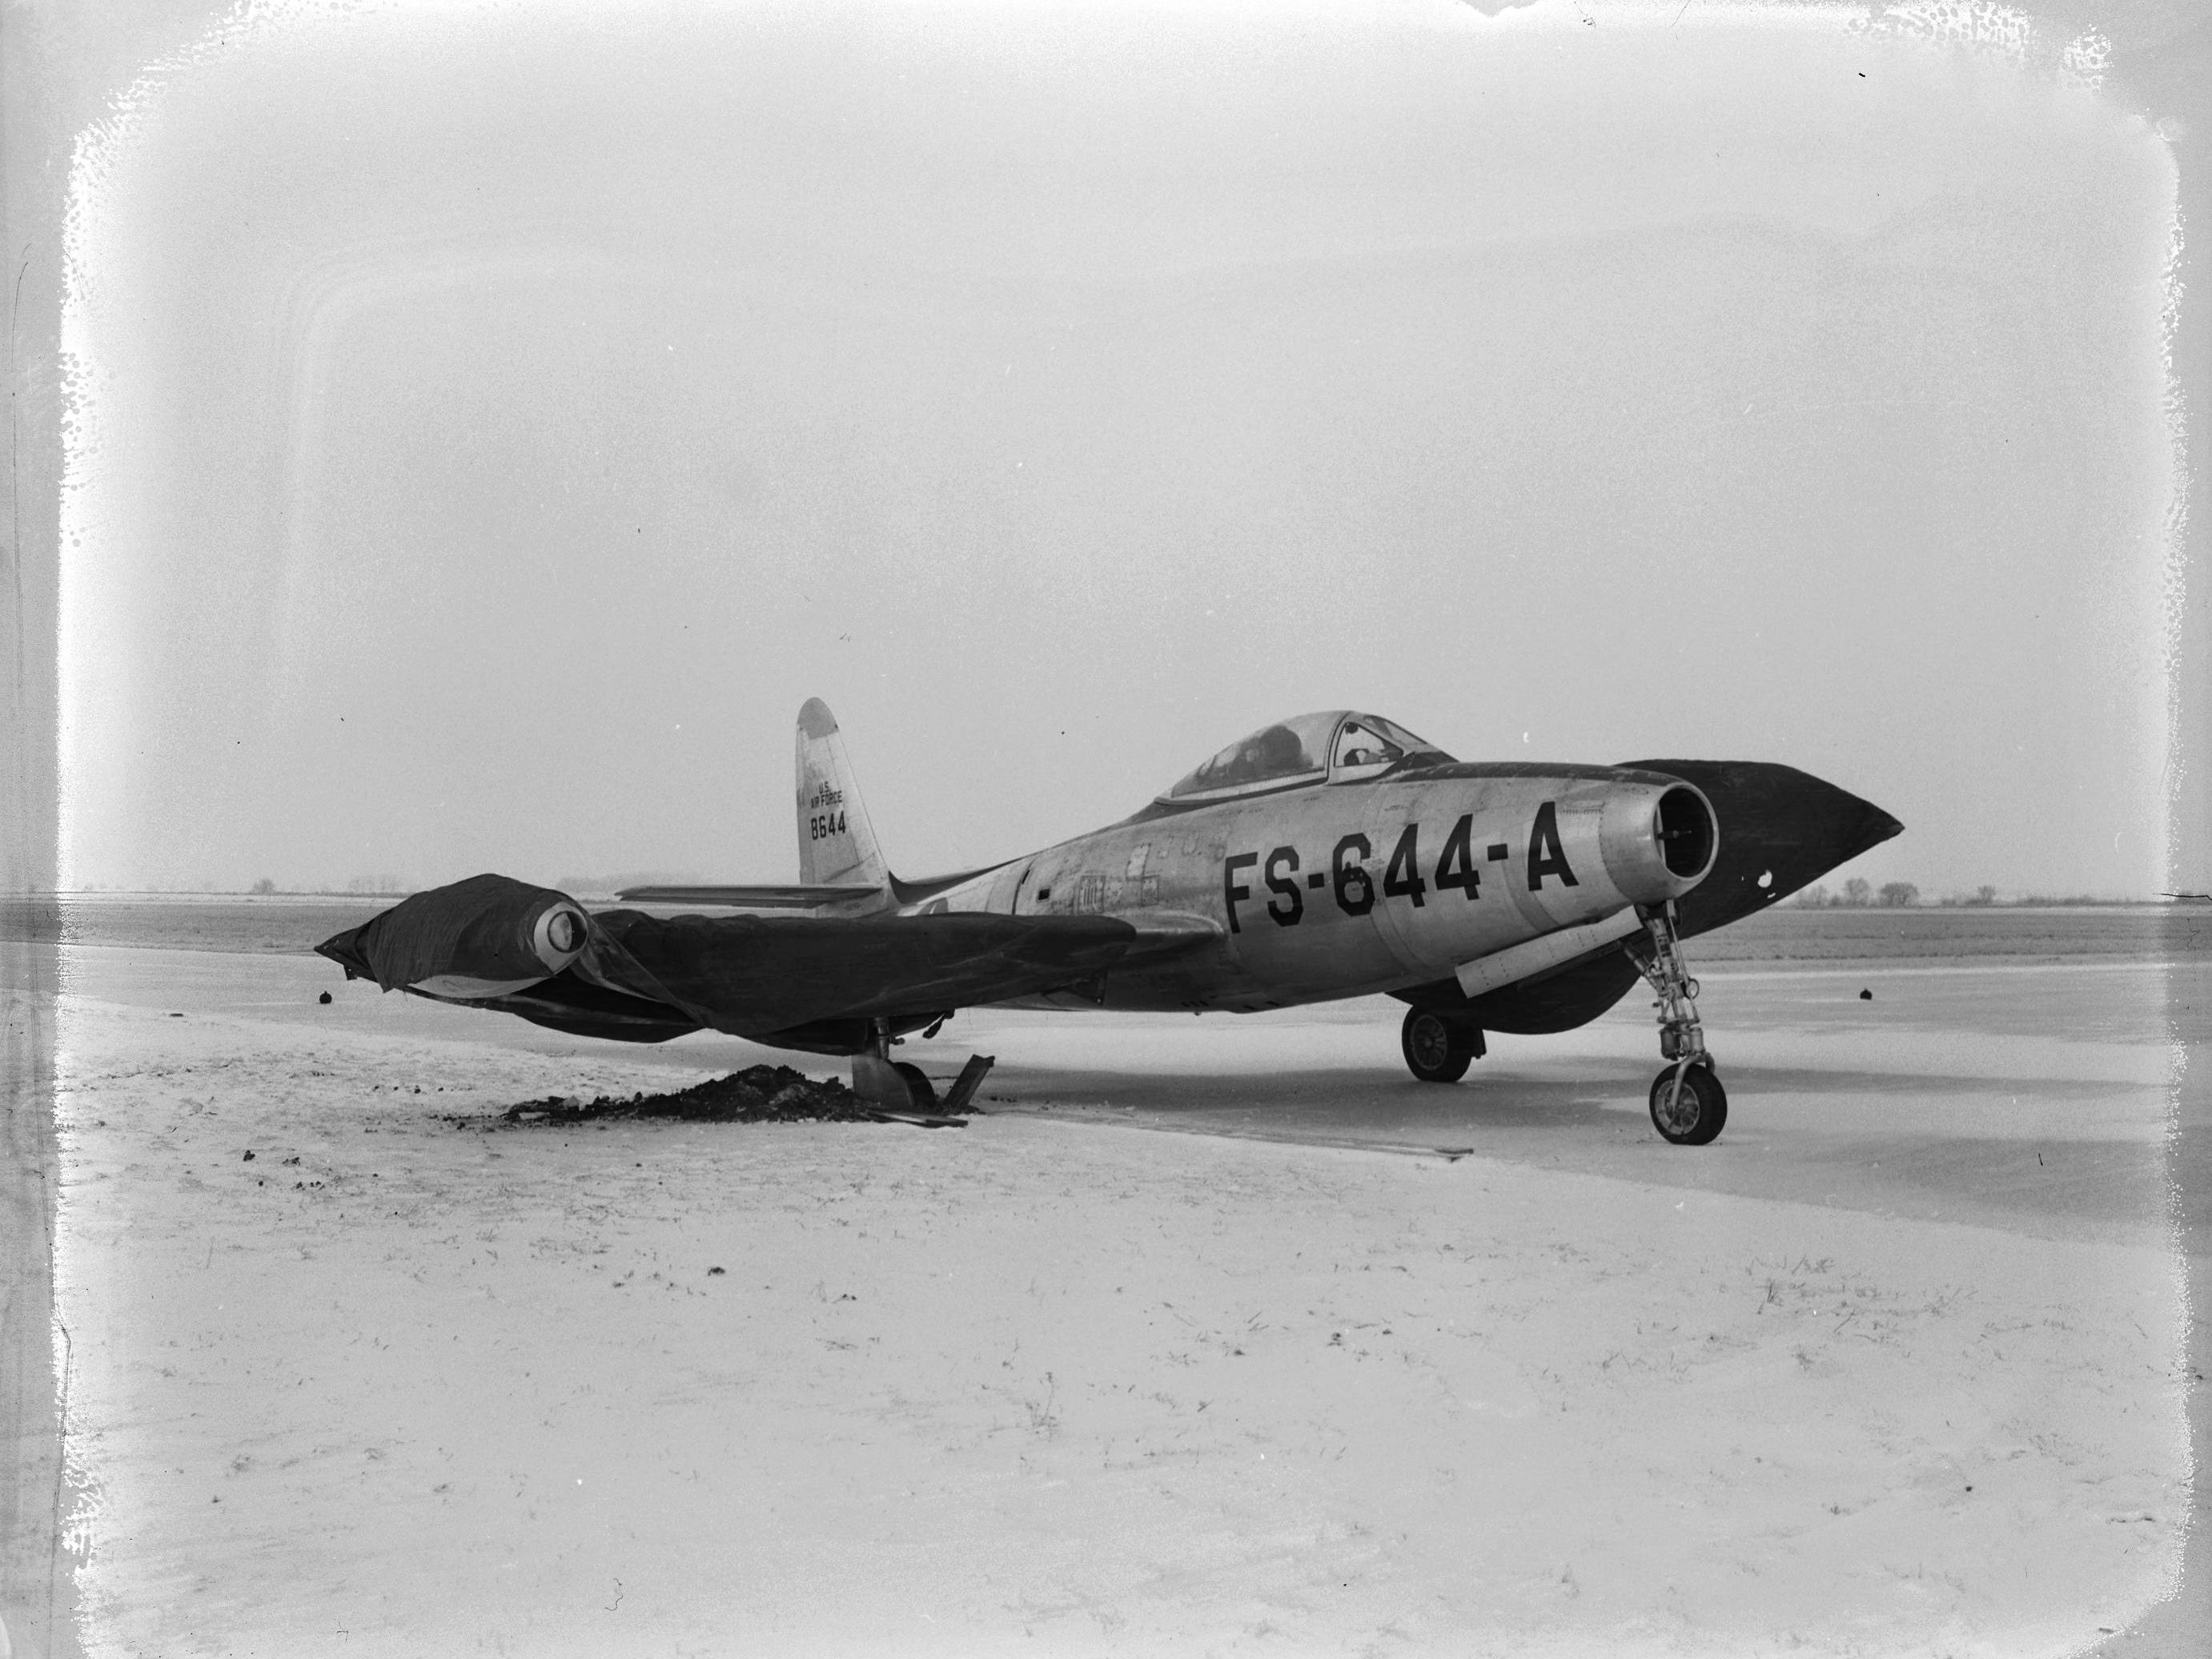 "A heavy Army jet fighter plane which was bogged down in the mud ""Big Mo style"" after slipping off a concrete runway at municipal airport. The plane, piloted by Captain Lon Kappell, husband of Springfieldian Jean Lightfoot Kappell, finally was freed from its muddy bed, only after the Navy, remembering the Army's offer of 'assistance' in freeing the battleship Missouri, told Kappell it ""would be glad to help."" Published in the Leader & Press on March 13, 1950."